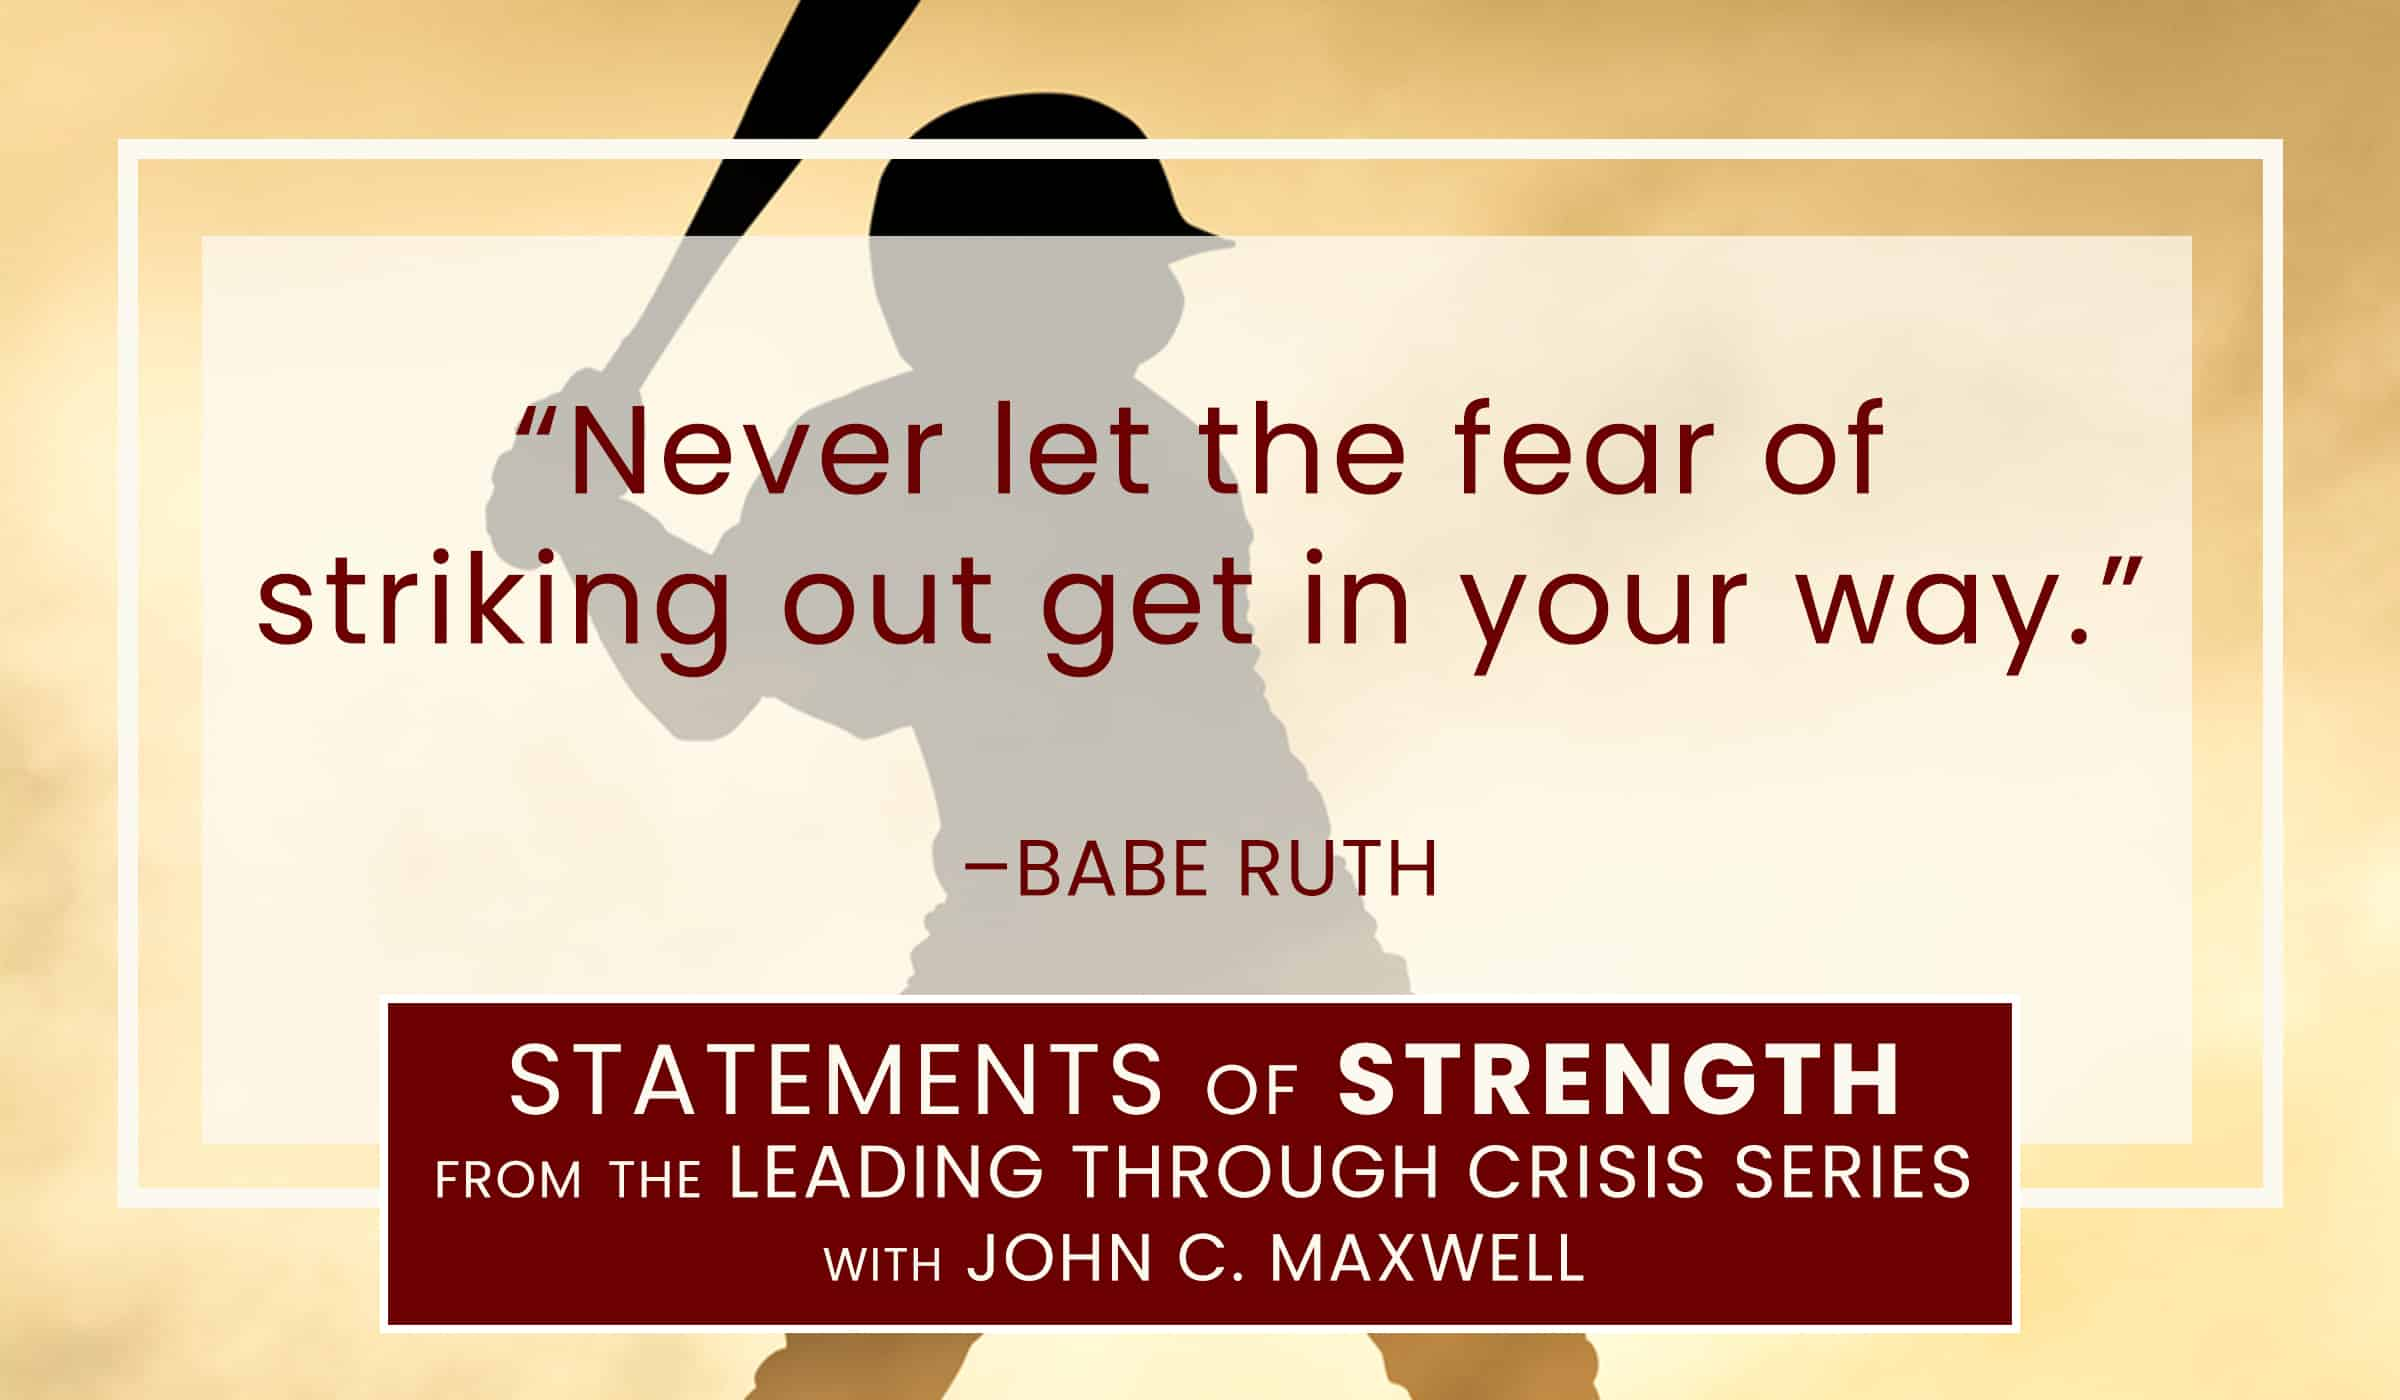 image of quotation picture with quote from babe ruth